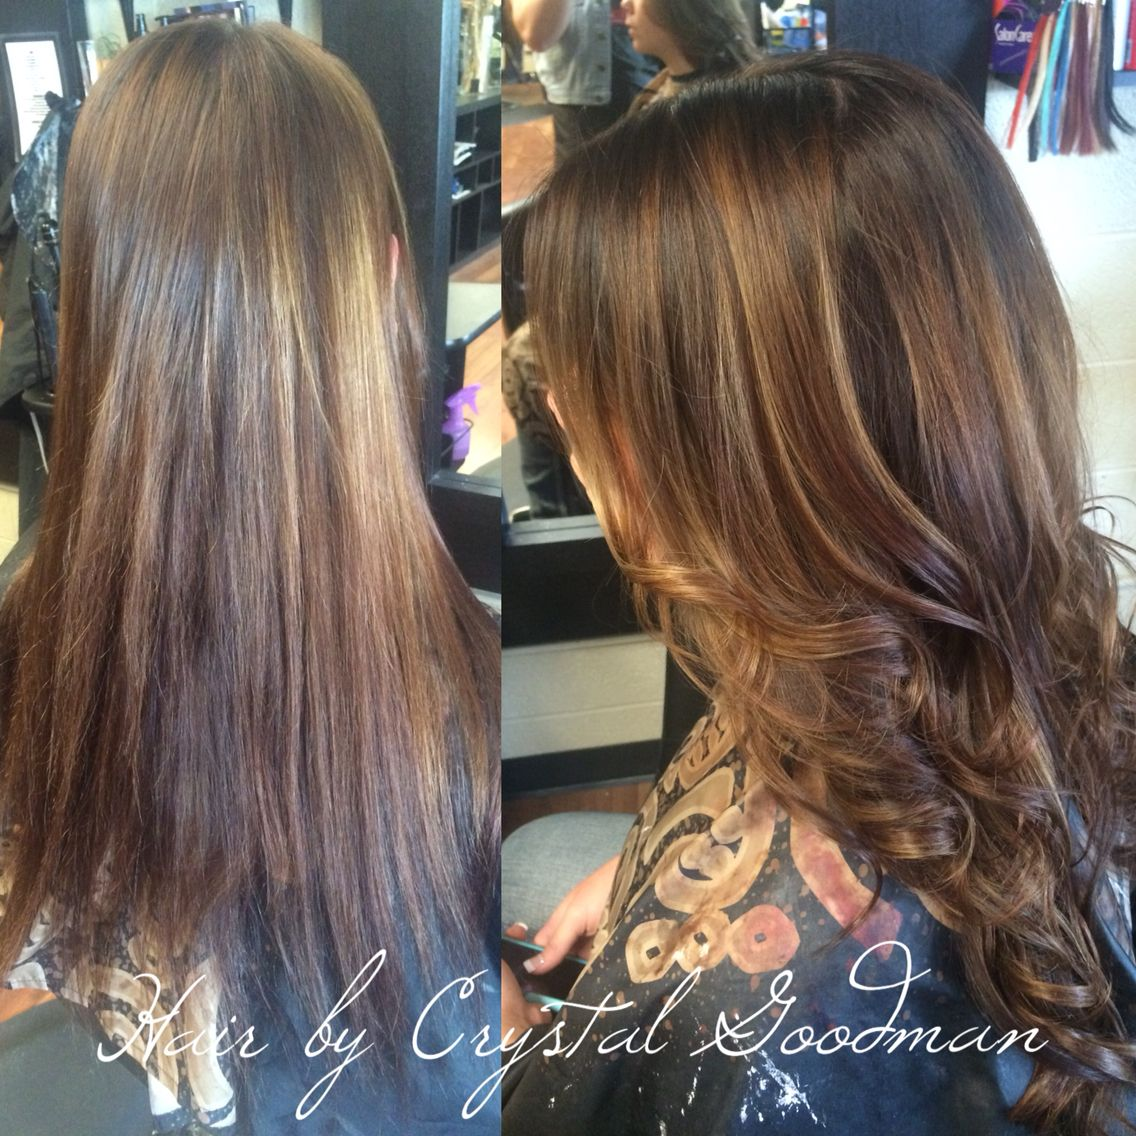 Balayage Ombre Before And After Brown Hair Curled Long By Crystal Goodman